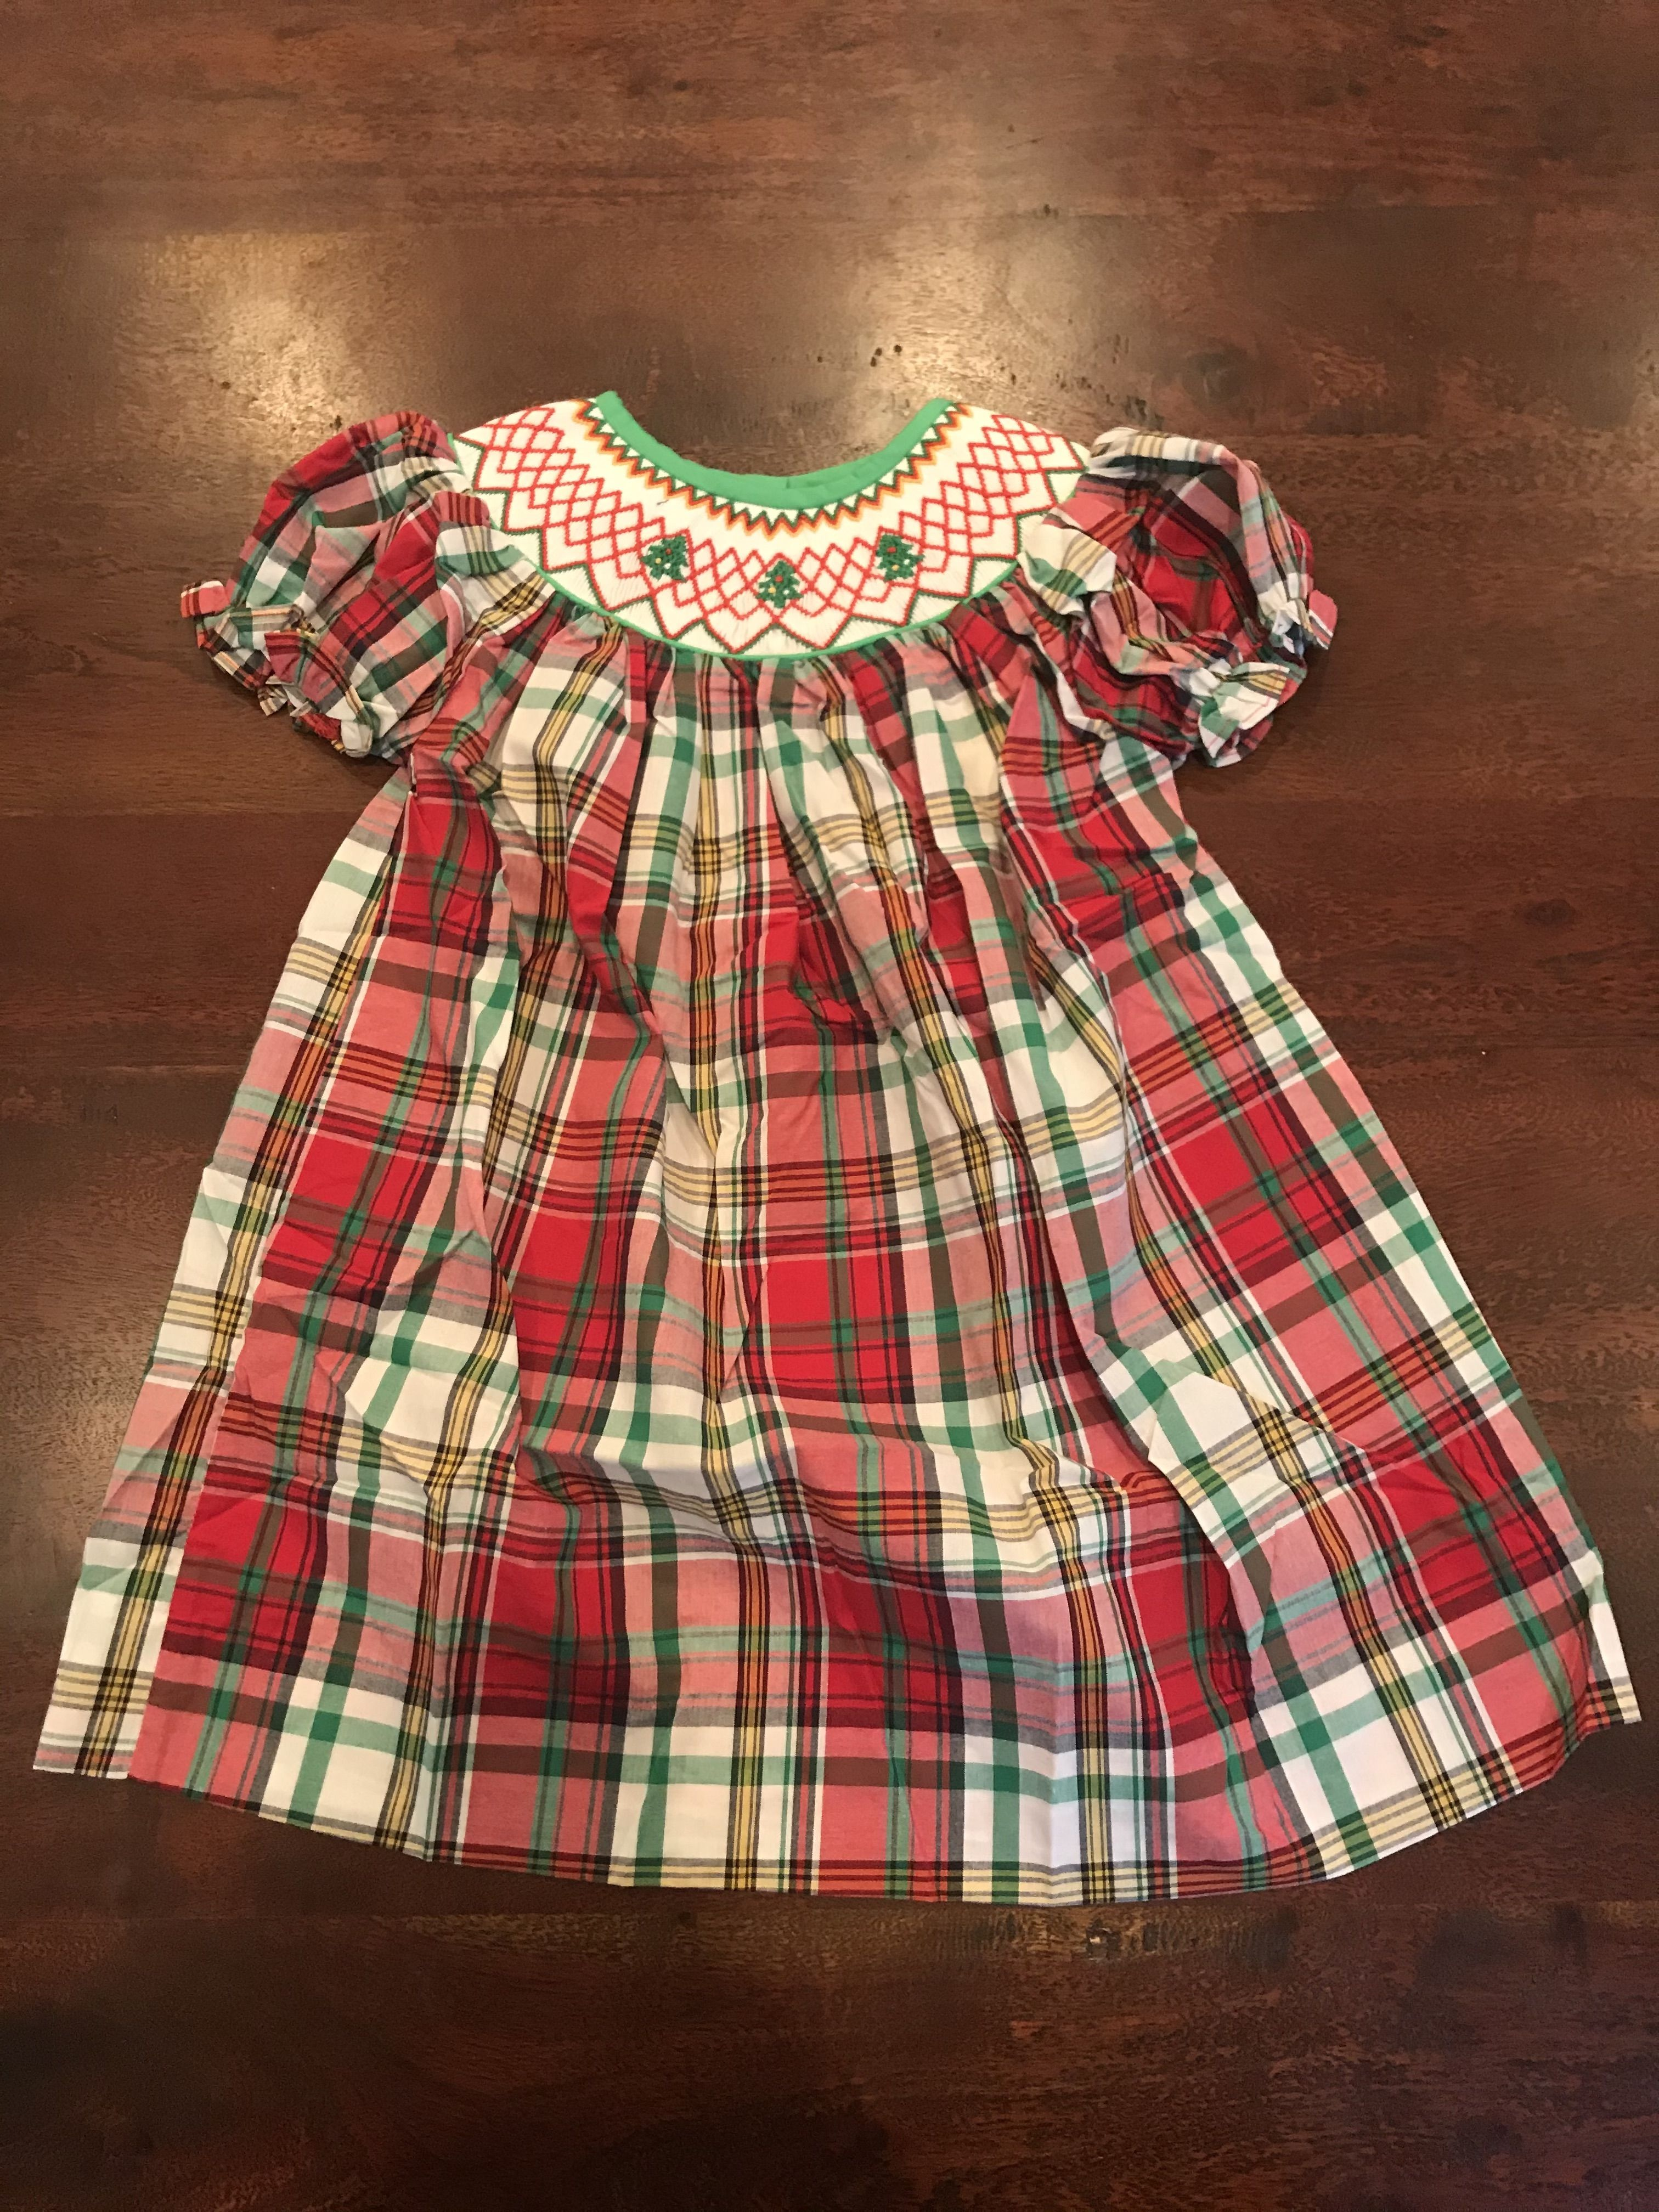 New for Fall! A holiday classic - this red plaid with intricate Christmas Tree detailing will be perfect for family photos and get-togethers this season! Multiple sizes available. Visit britchesandbows.com to shop today!  #babeeni #christmastree #christmasdress #plaiddress #redplaid #plaid #smocked #smockedchildrensclothing #smockeddress #dress #girlsdress #smockedchristmasdress #childrensholidayclothes #girlsholidayclothes #holidaydress